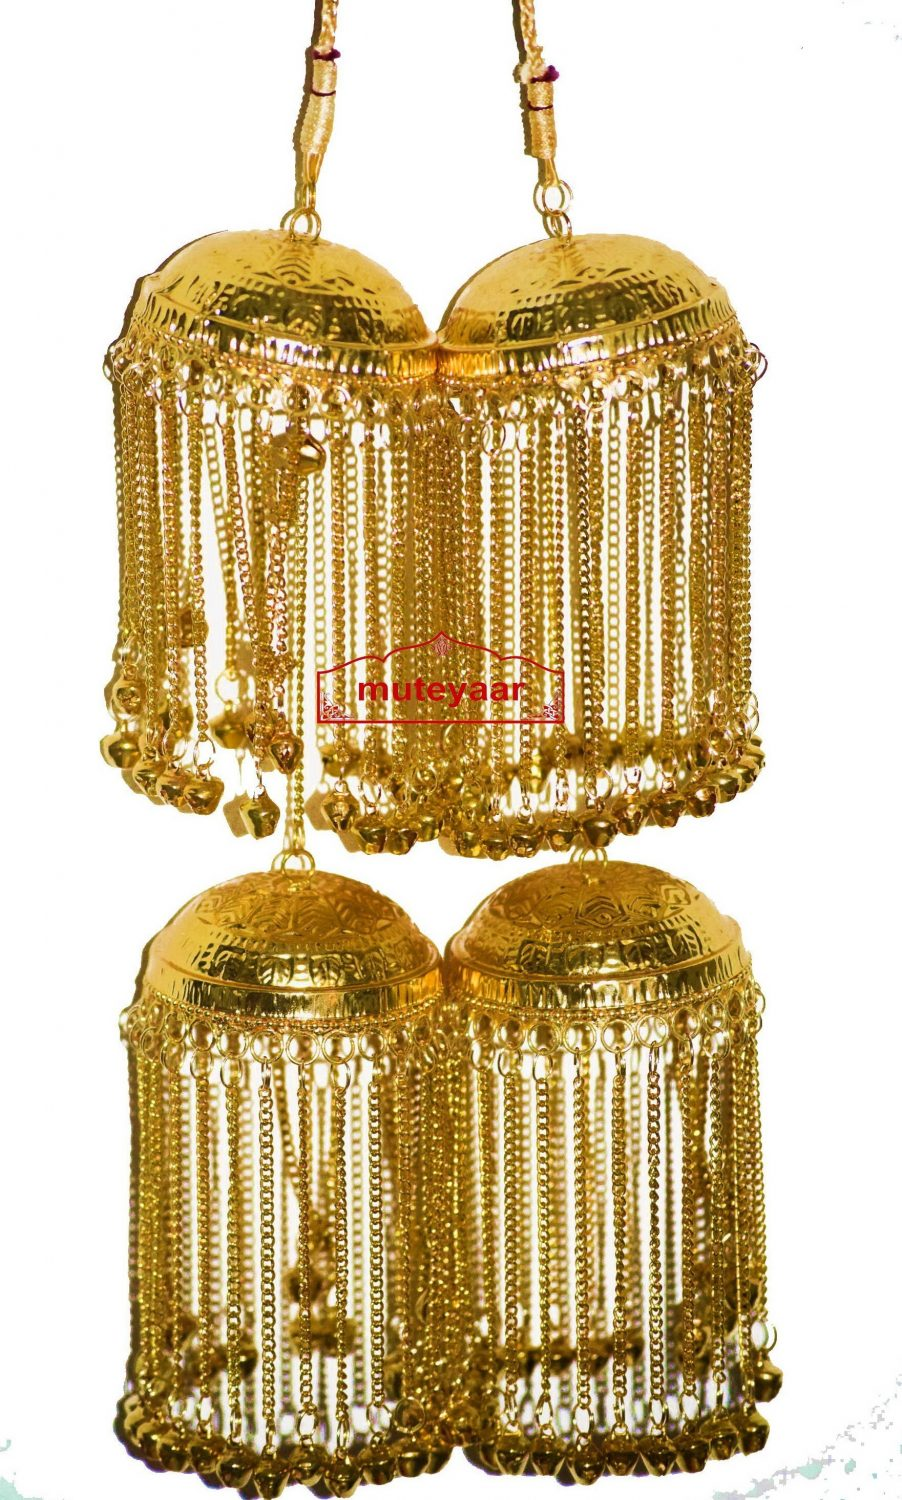 Gold Polished Kalira For Punjabi Wedding J0901 1